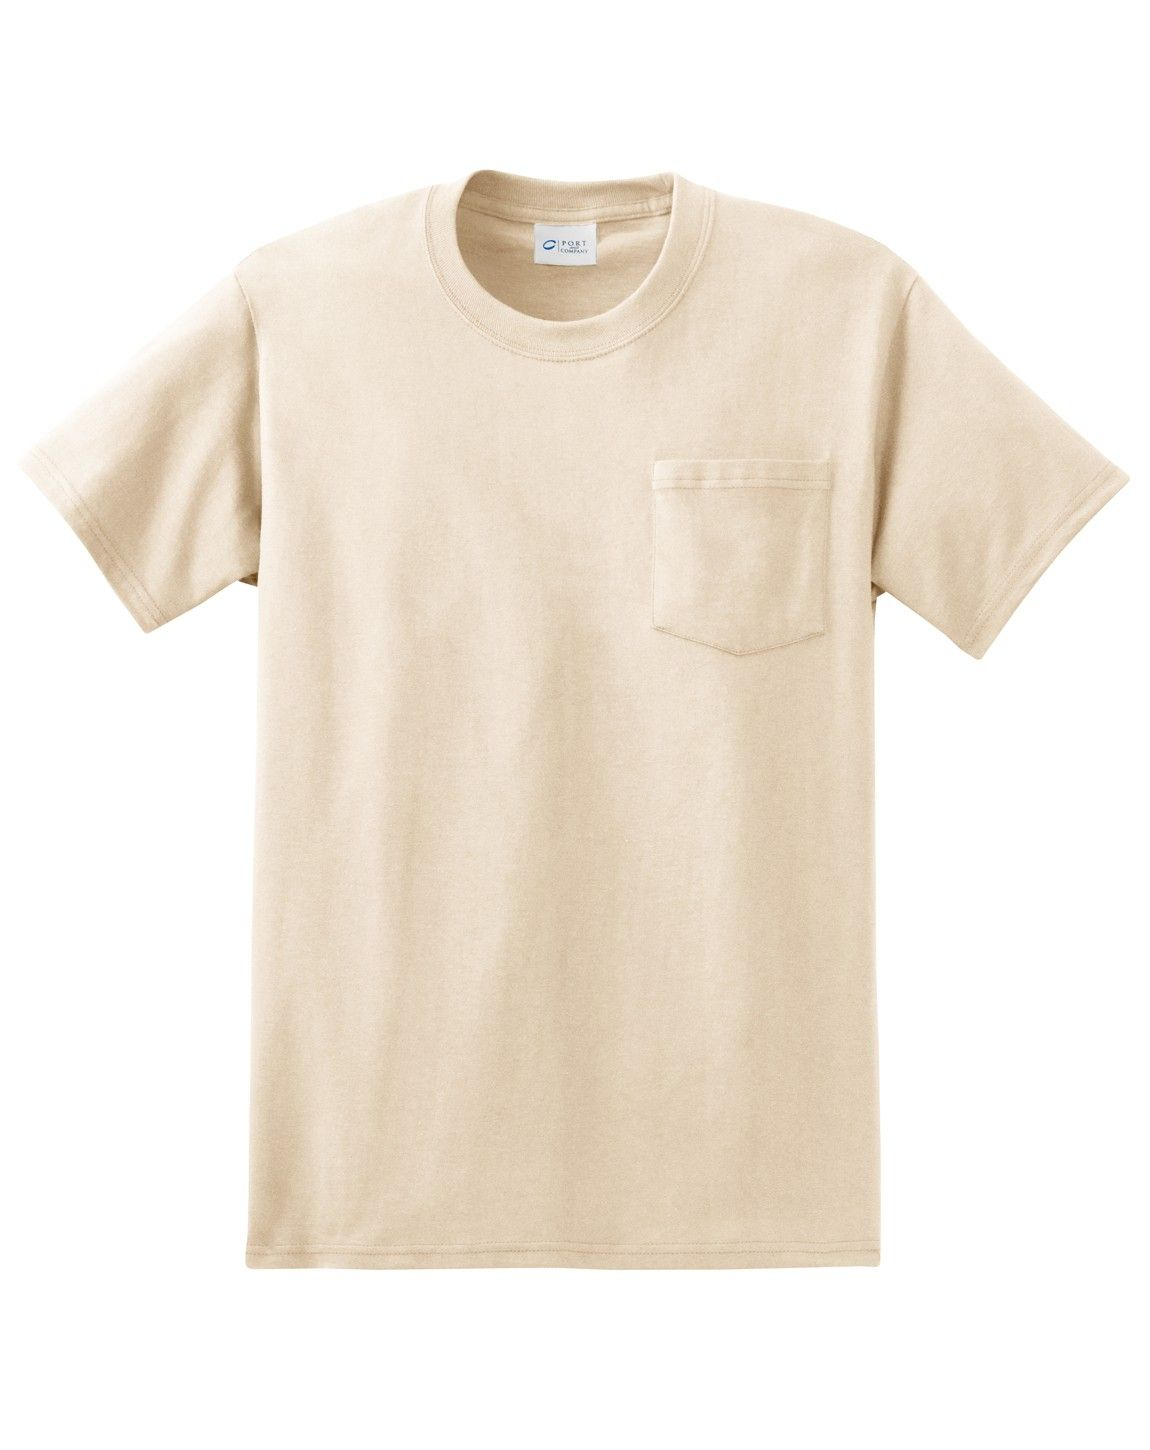 Port Company Pc61pt Tall Essential T Shirt With Pocket T Shirt Wholesale T Shirts Cool T Shirts